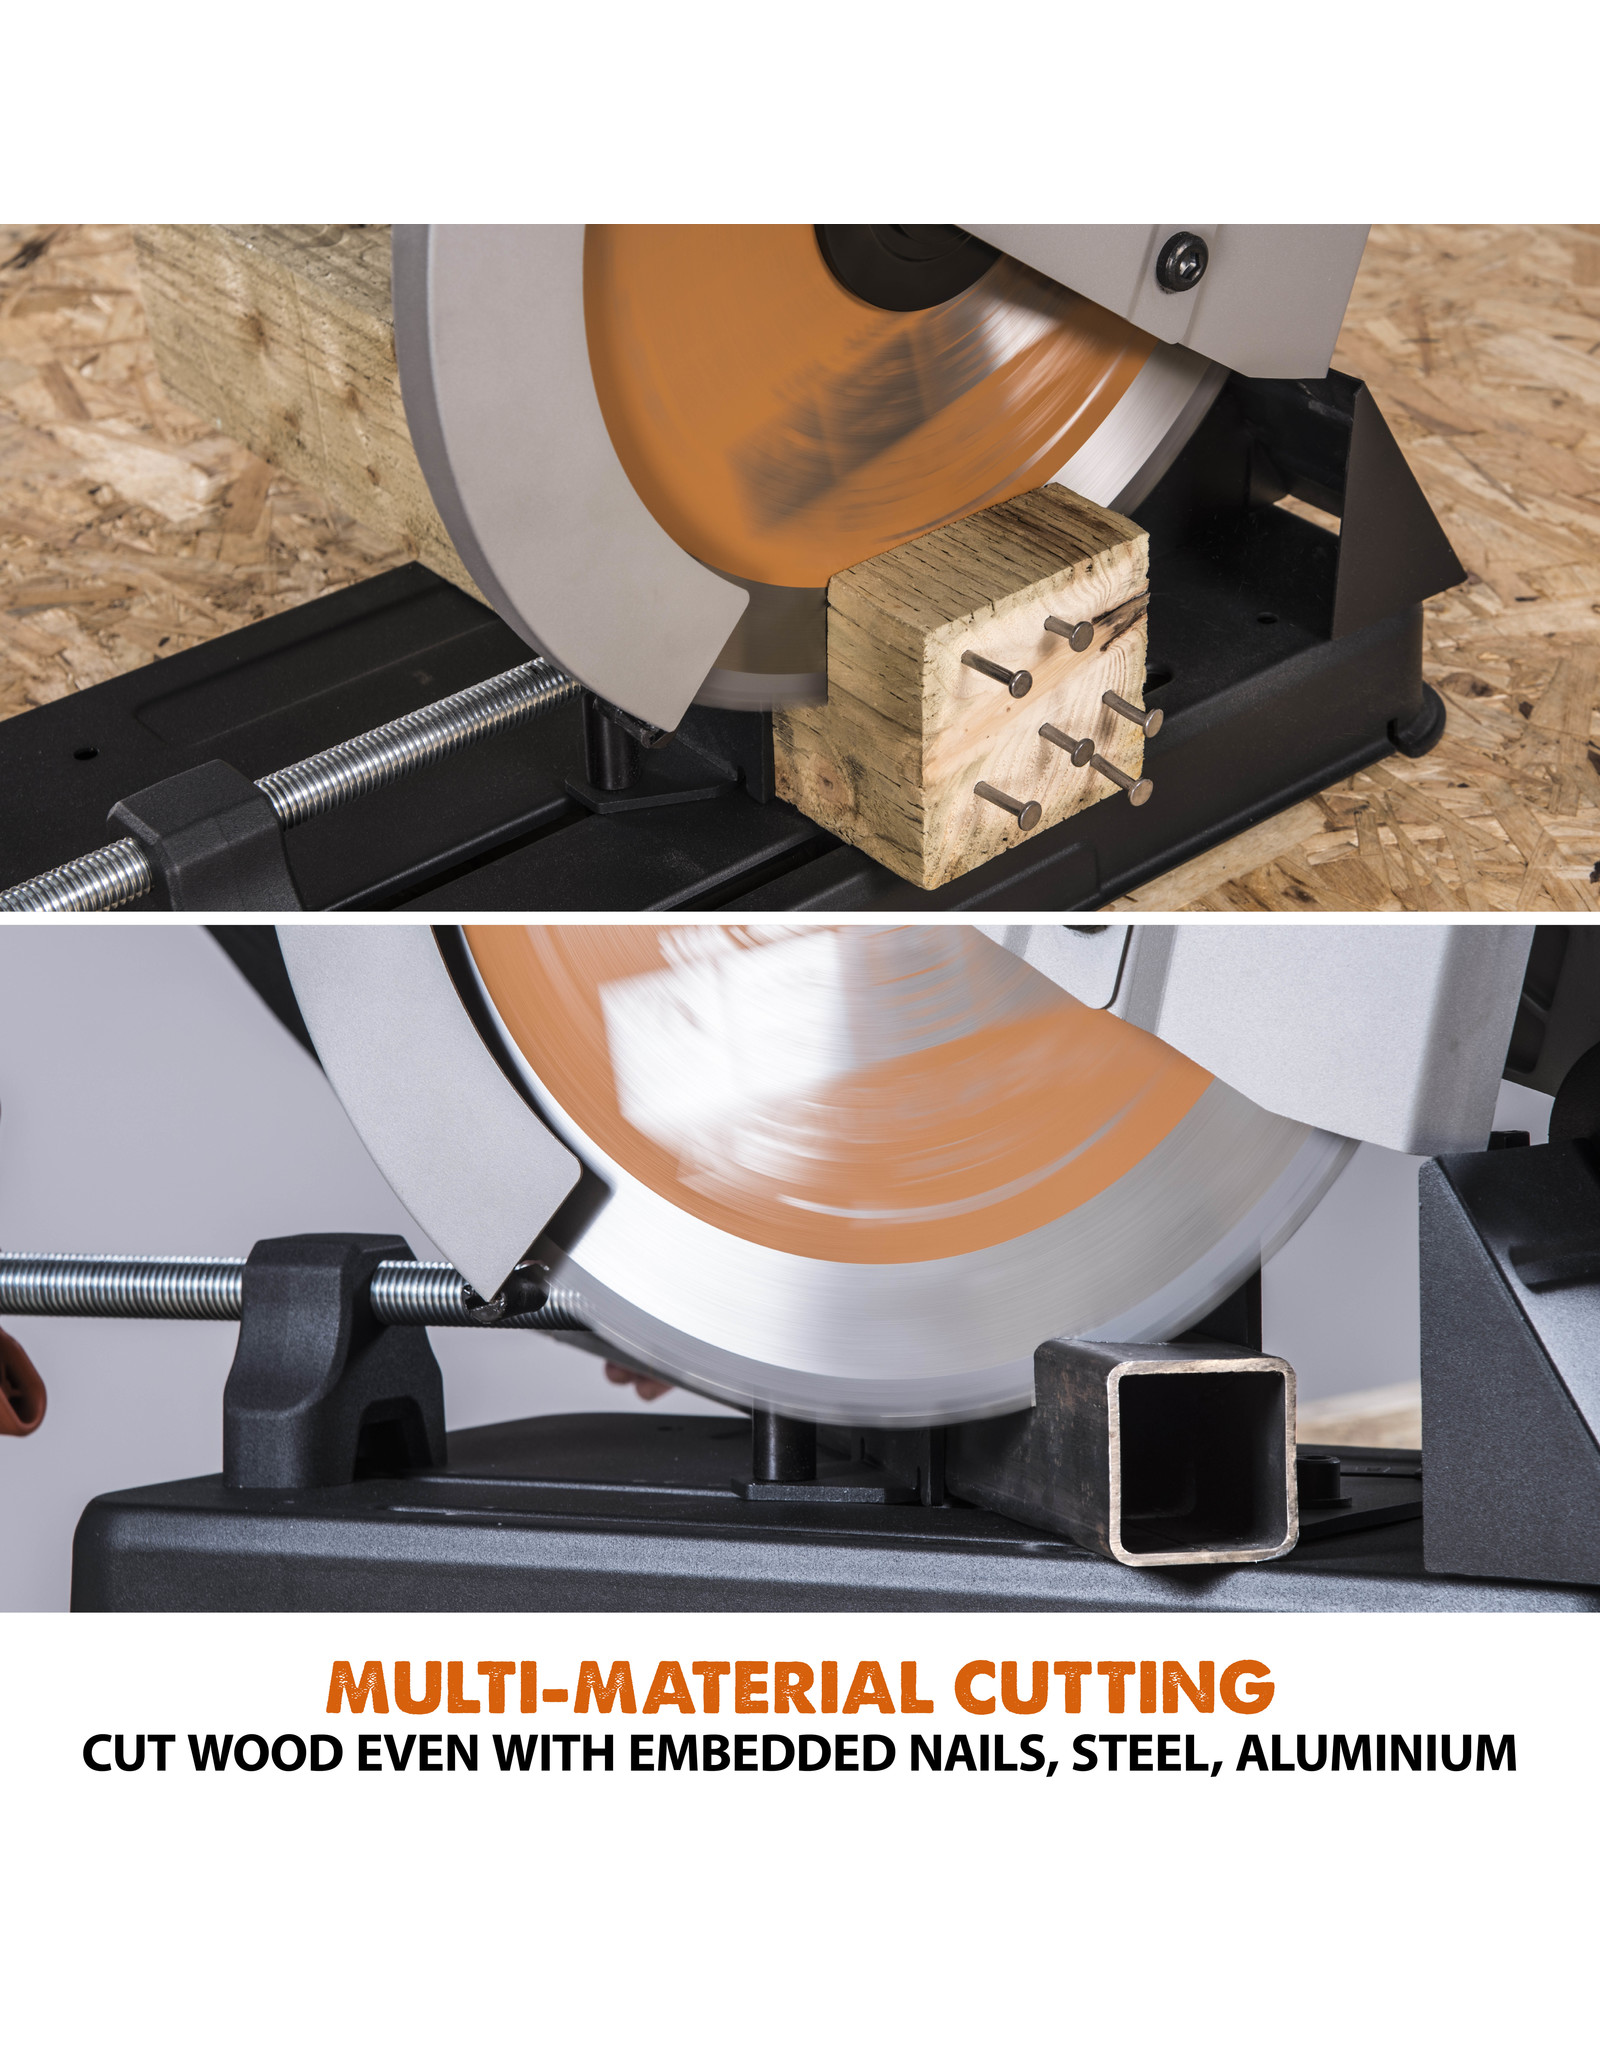 Evolution Power Tools Build Line CROSSCUT SAW RAGE R355CPS + UNIVERSAL CROSSCUT SAW STAND - CHOP STAND